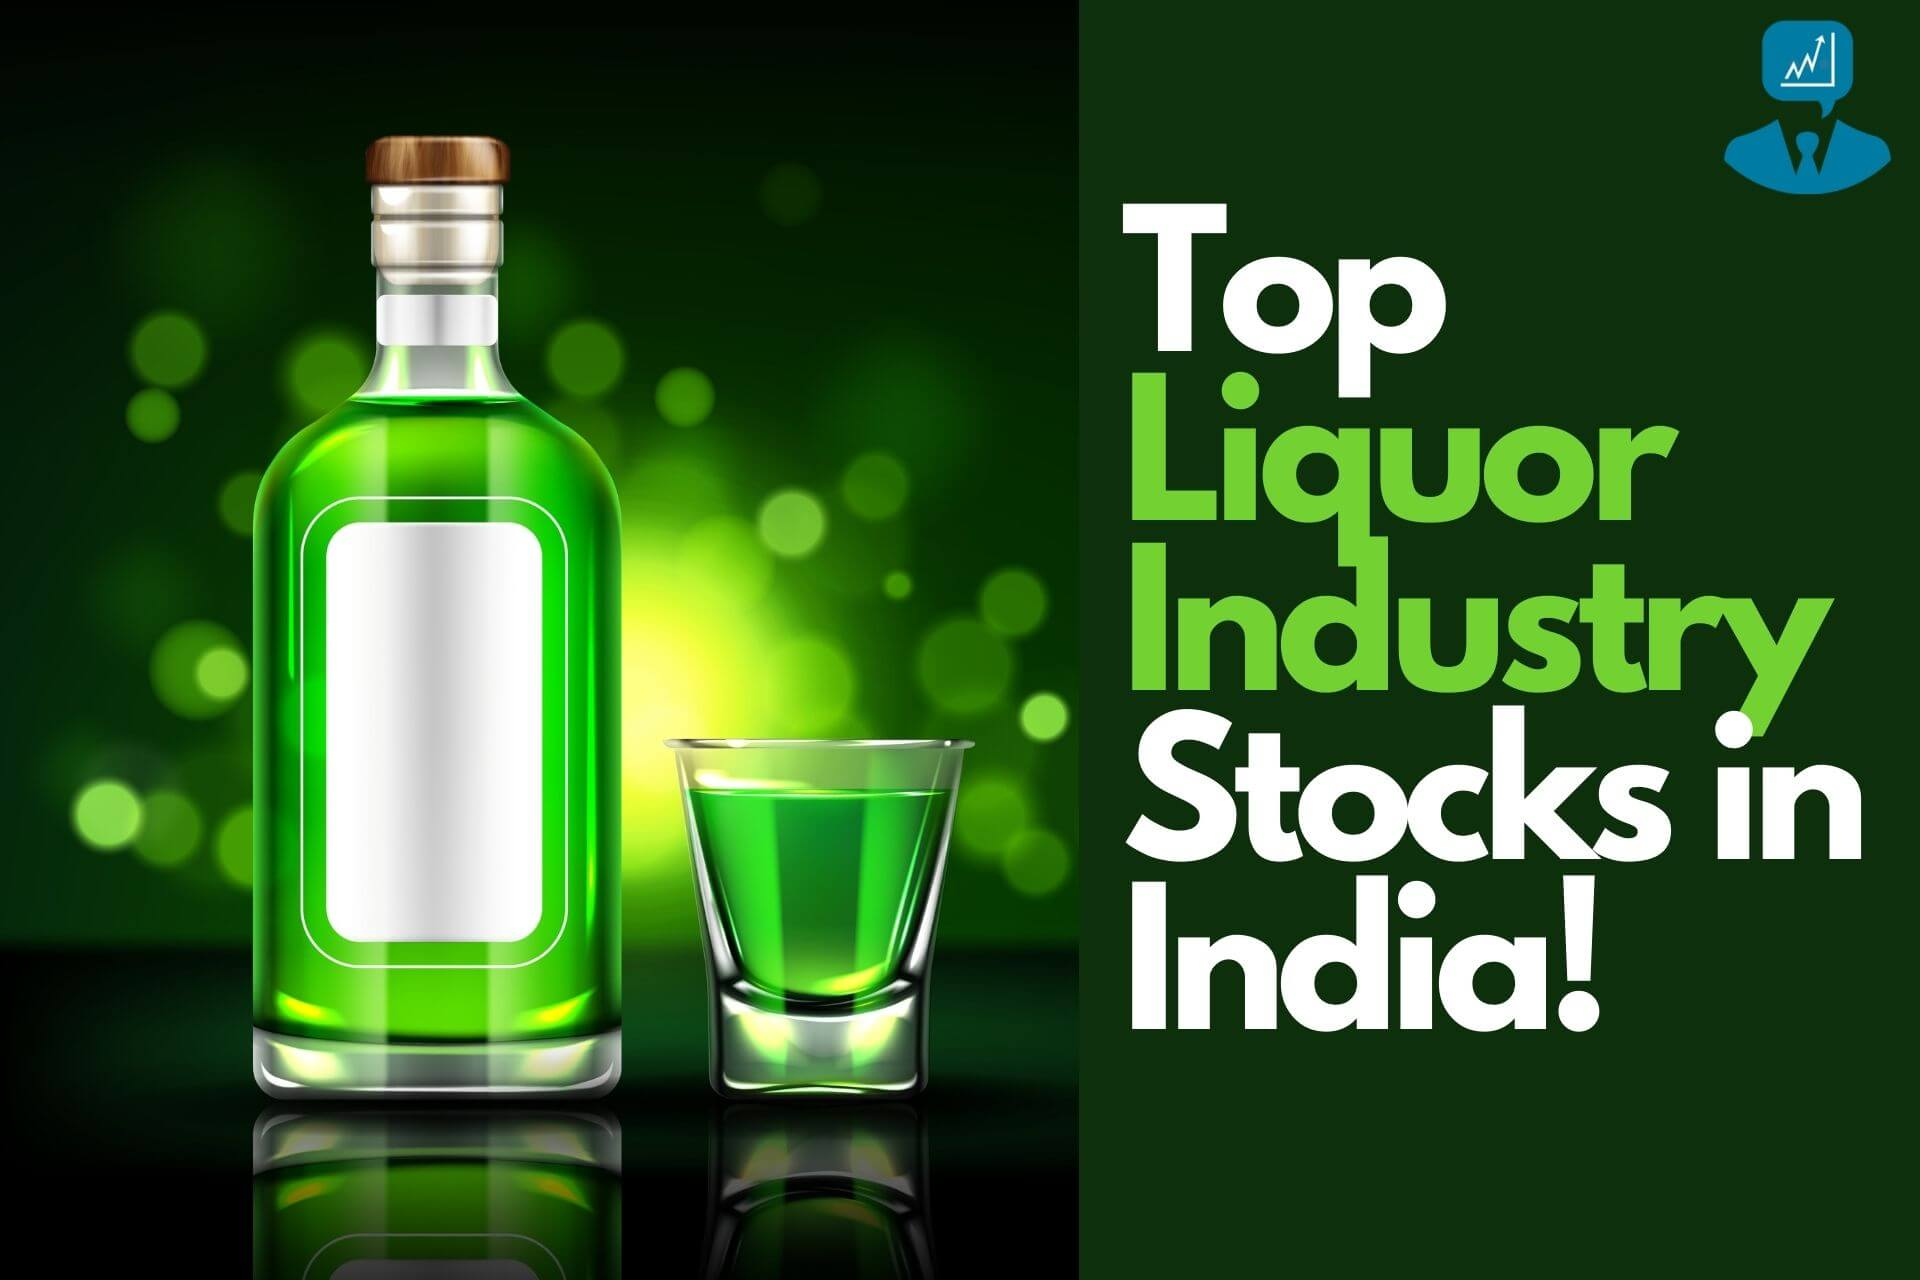 Top Liquor Industry Stocks in India - Best liquor stocks india